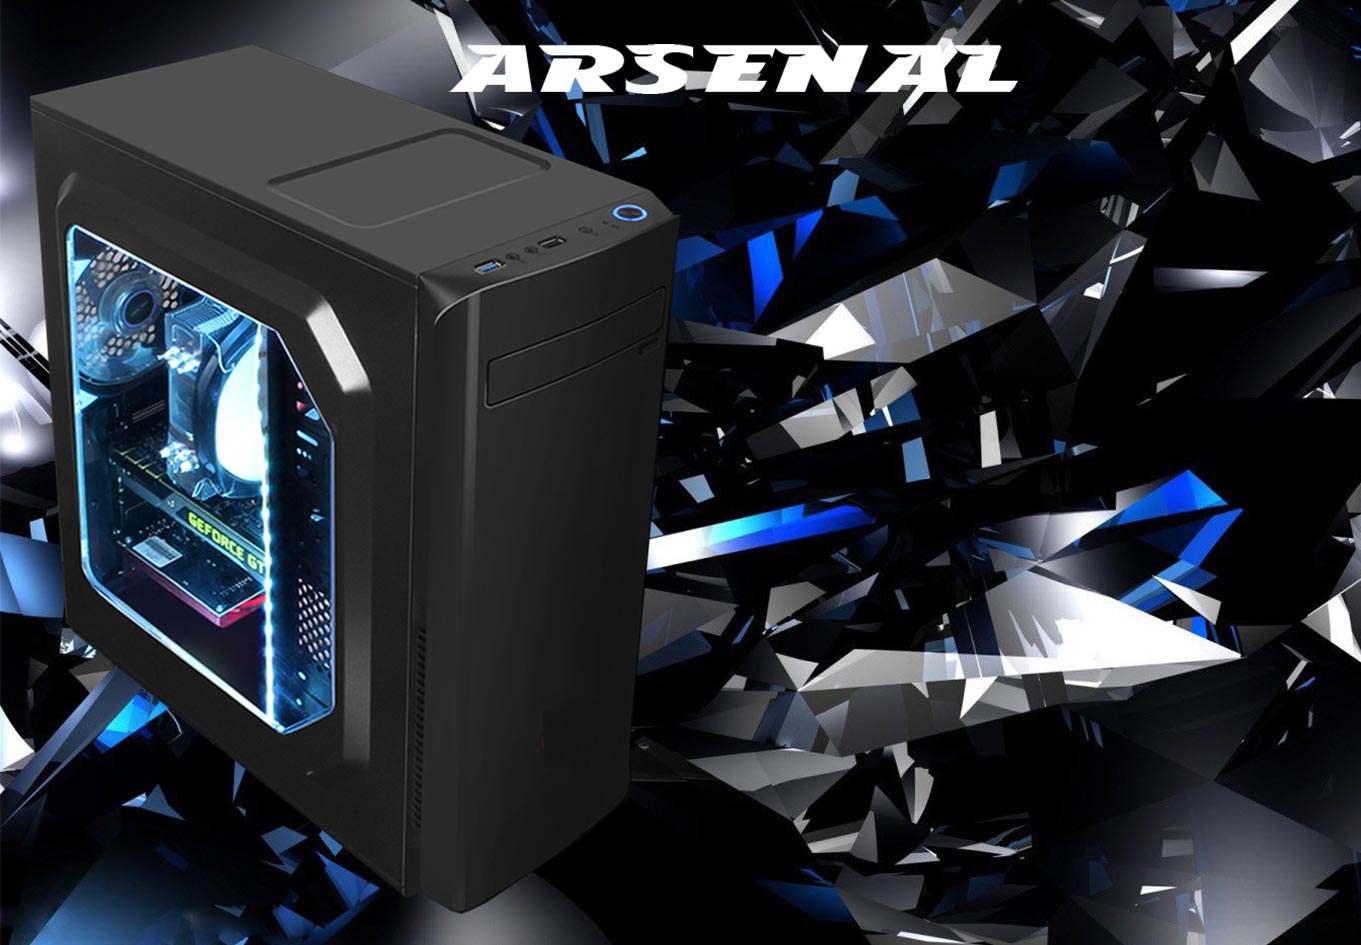 arsenal-venomrx-case